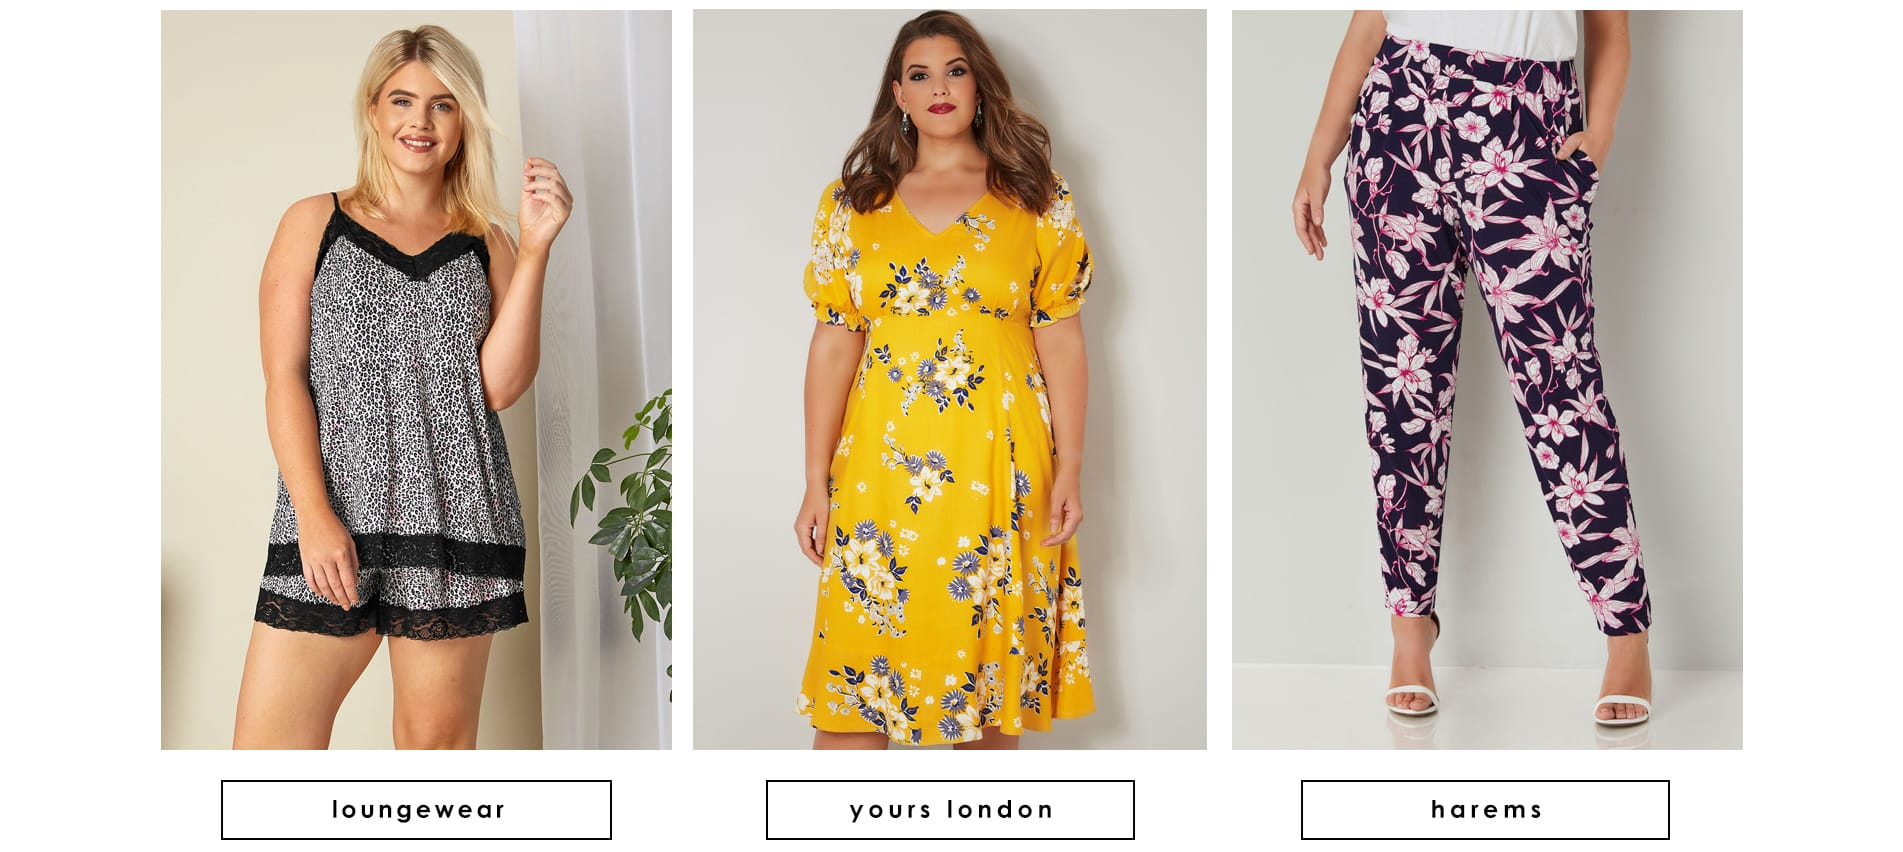 Plus size loungerwear, Yours London & Harems